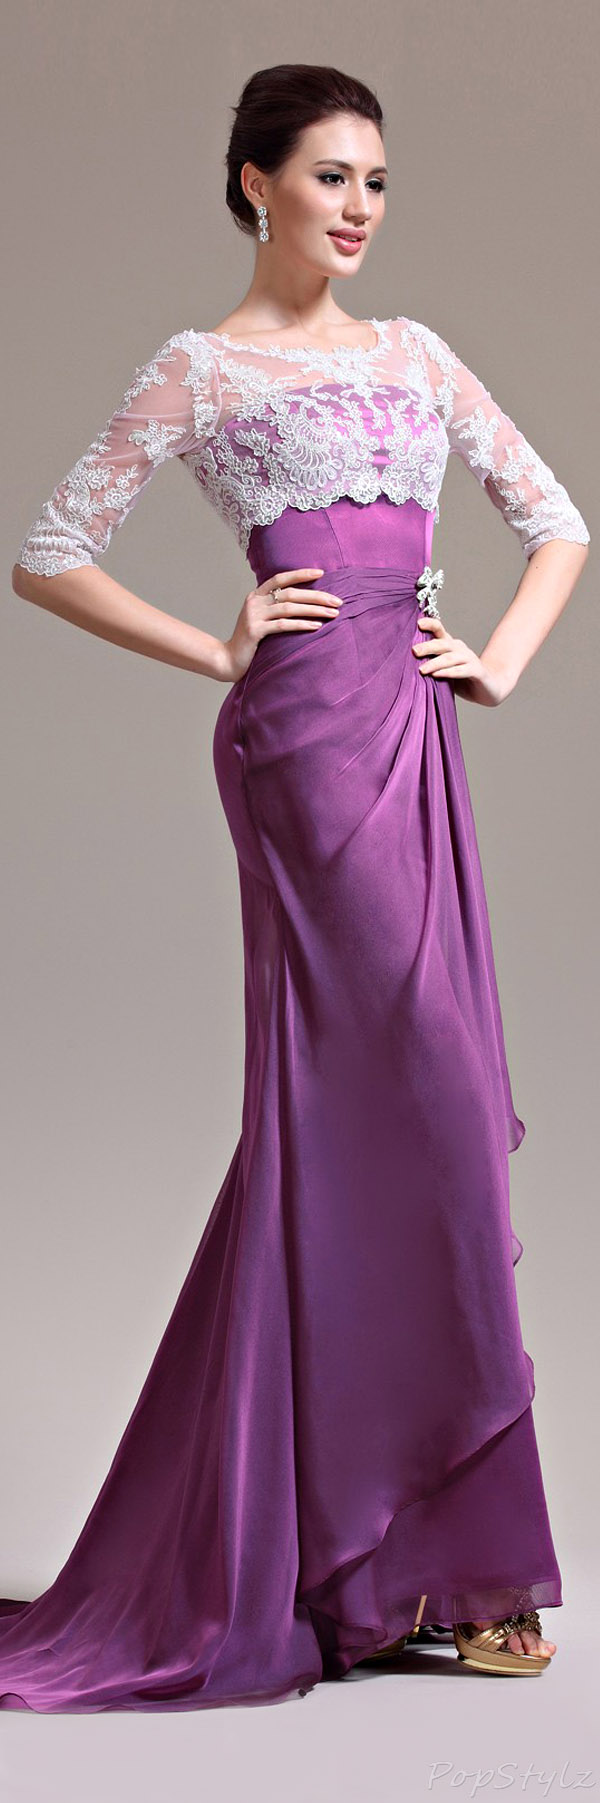 eDressit 26134512 Evening Gown